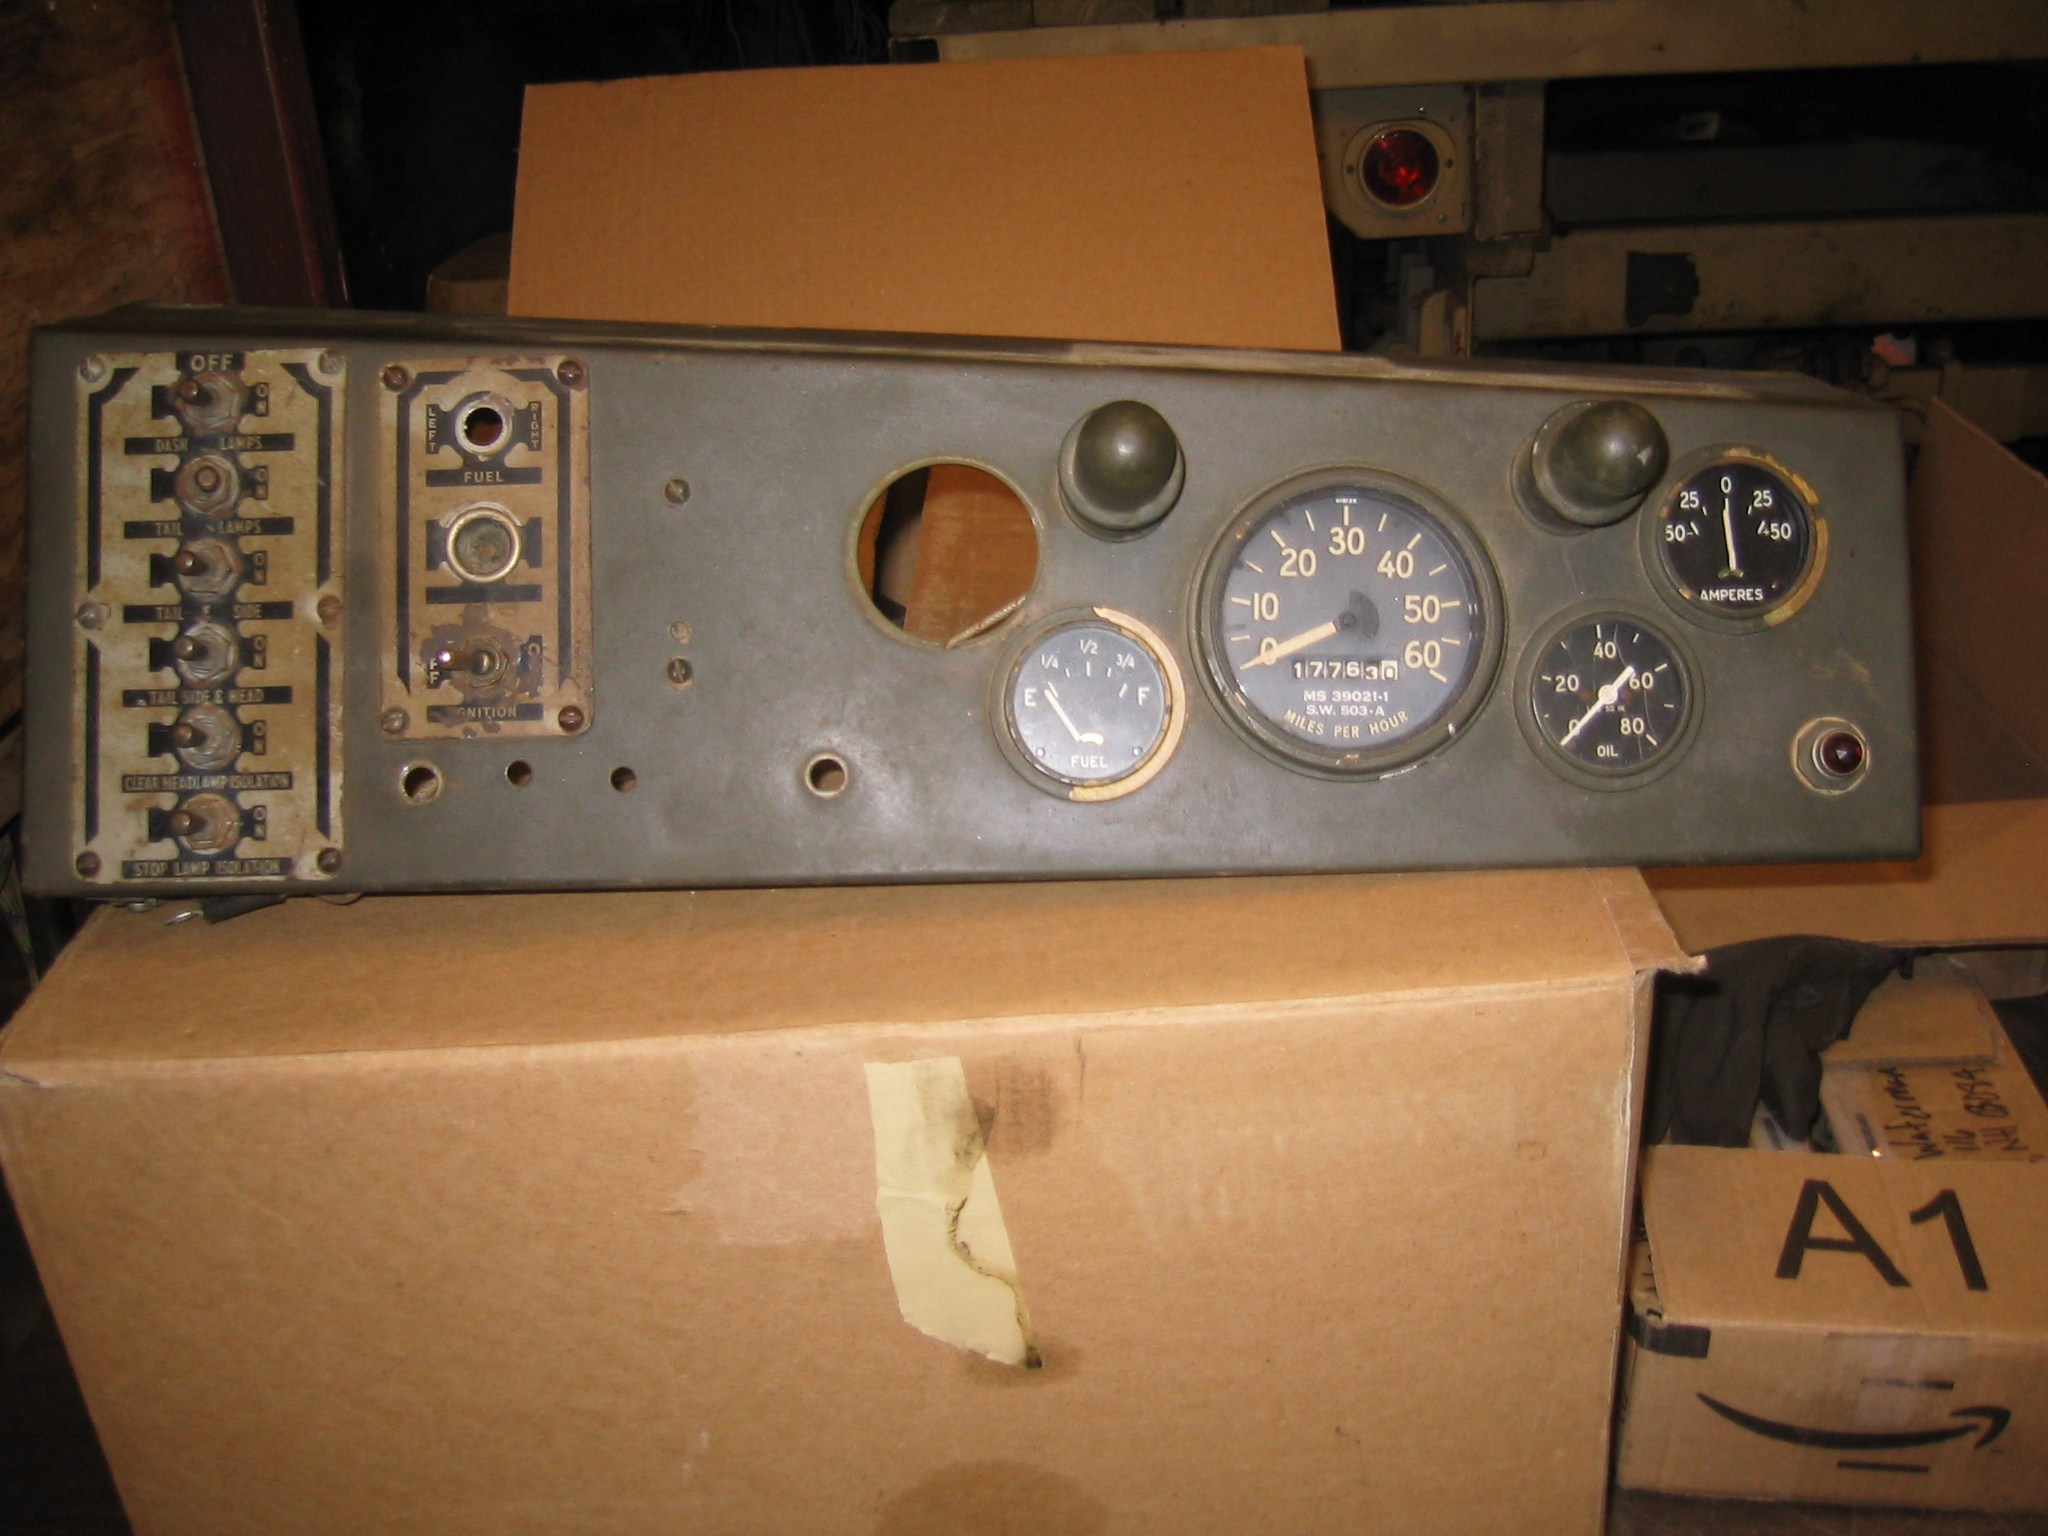 Cmp Wiring Information Harness Design Jobs In Canada The Backside Of Instrument Panel Was One Those Areas That I Decided Not To Repaint Leaving It Original Color And Paint As Something For Some